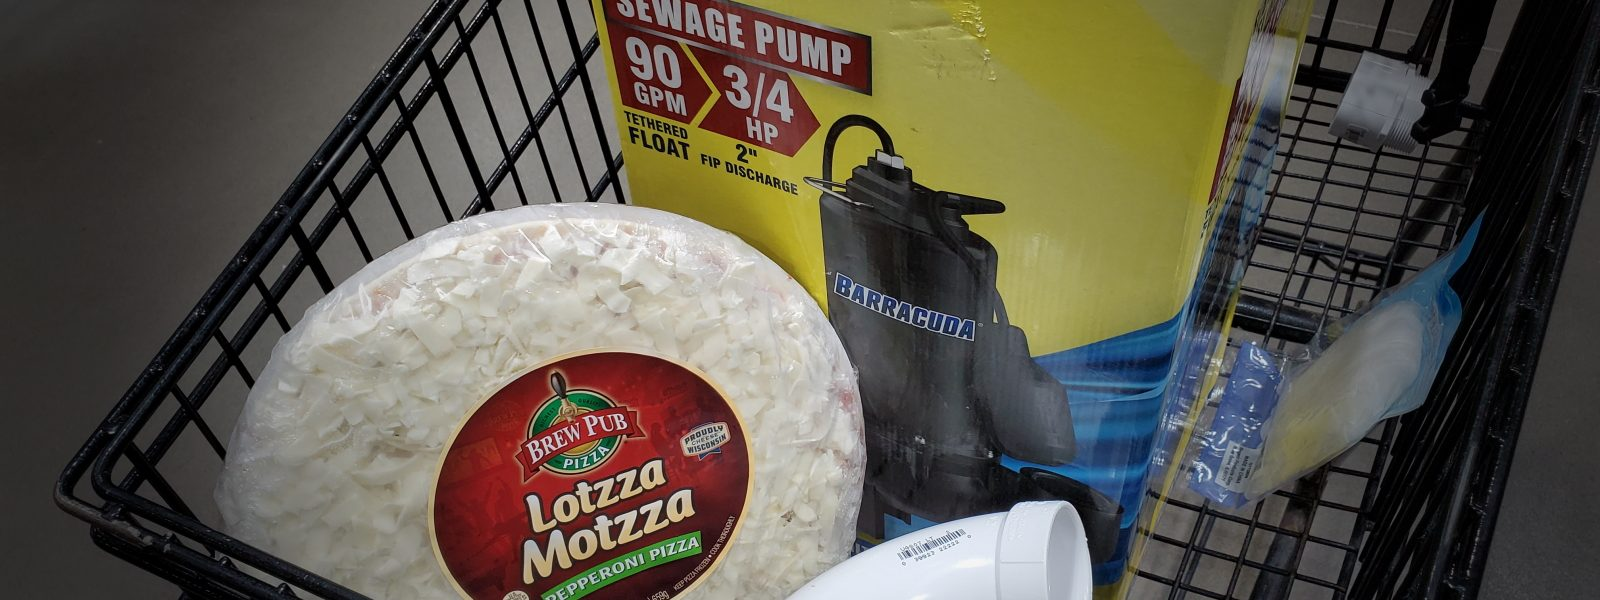 pizza and a pump